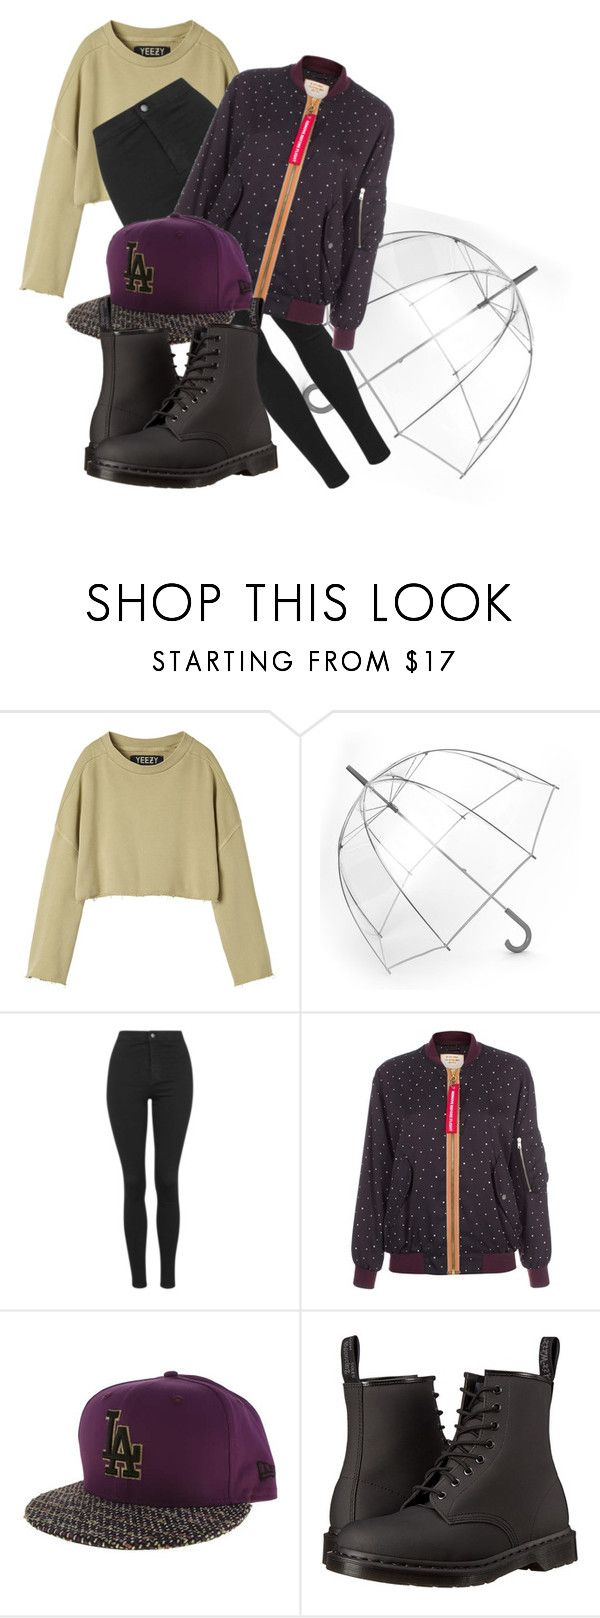 """""""Entourage"""" by chelsofly on Polyvore featuring adidas Originals, Totes, Topshop, Paul Smith, New Era, Dr. Martens, women's clothing, women's fashion, women and female"""